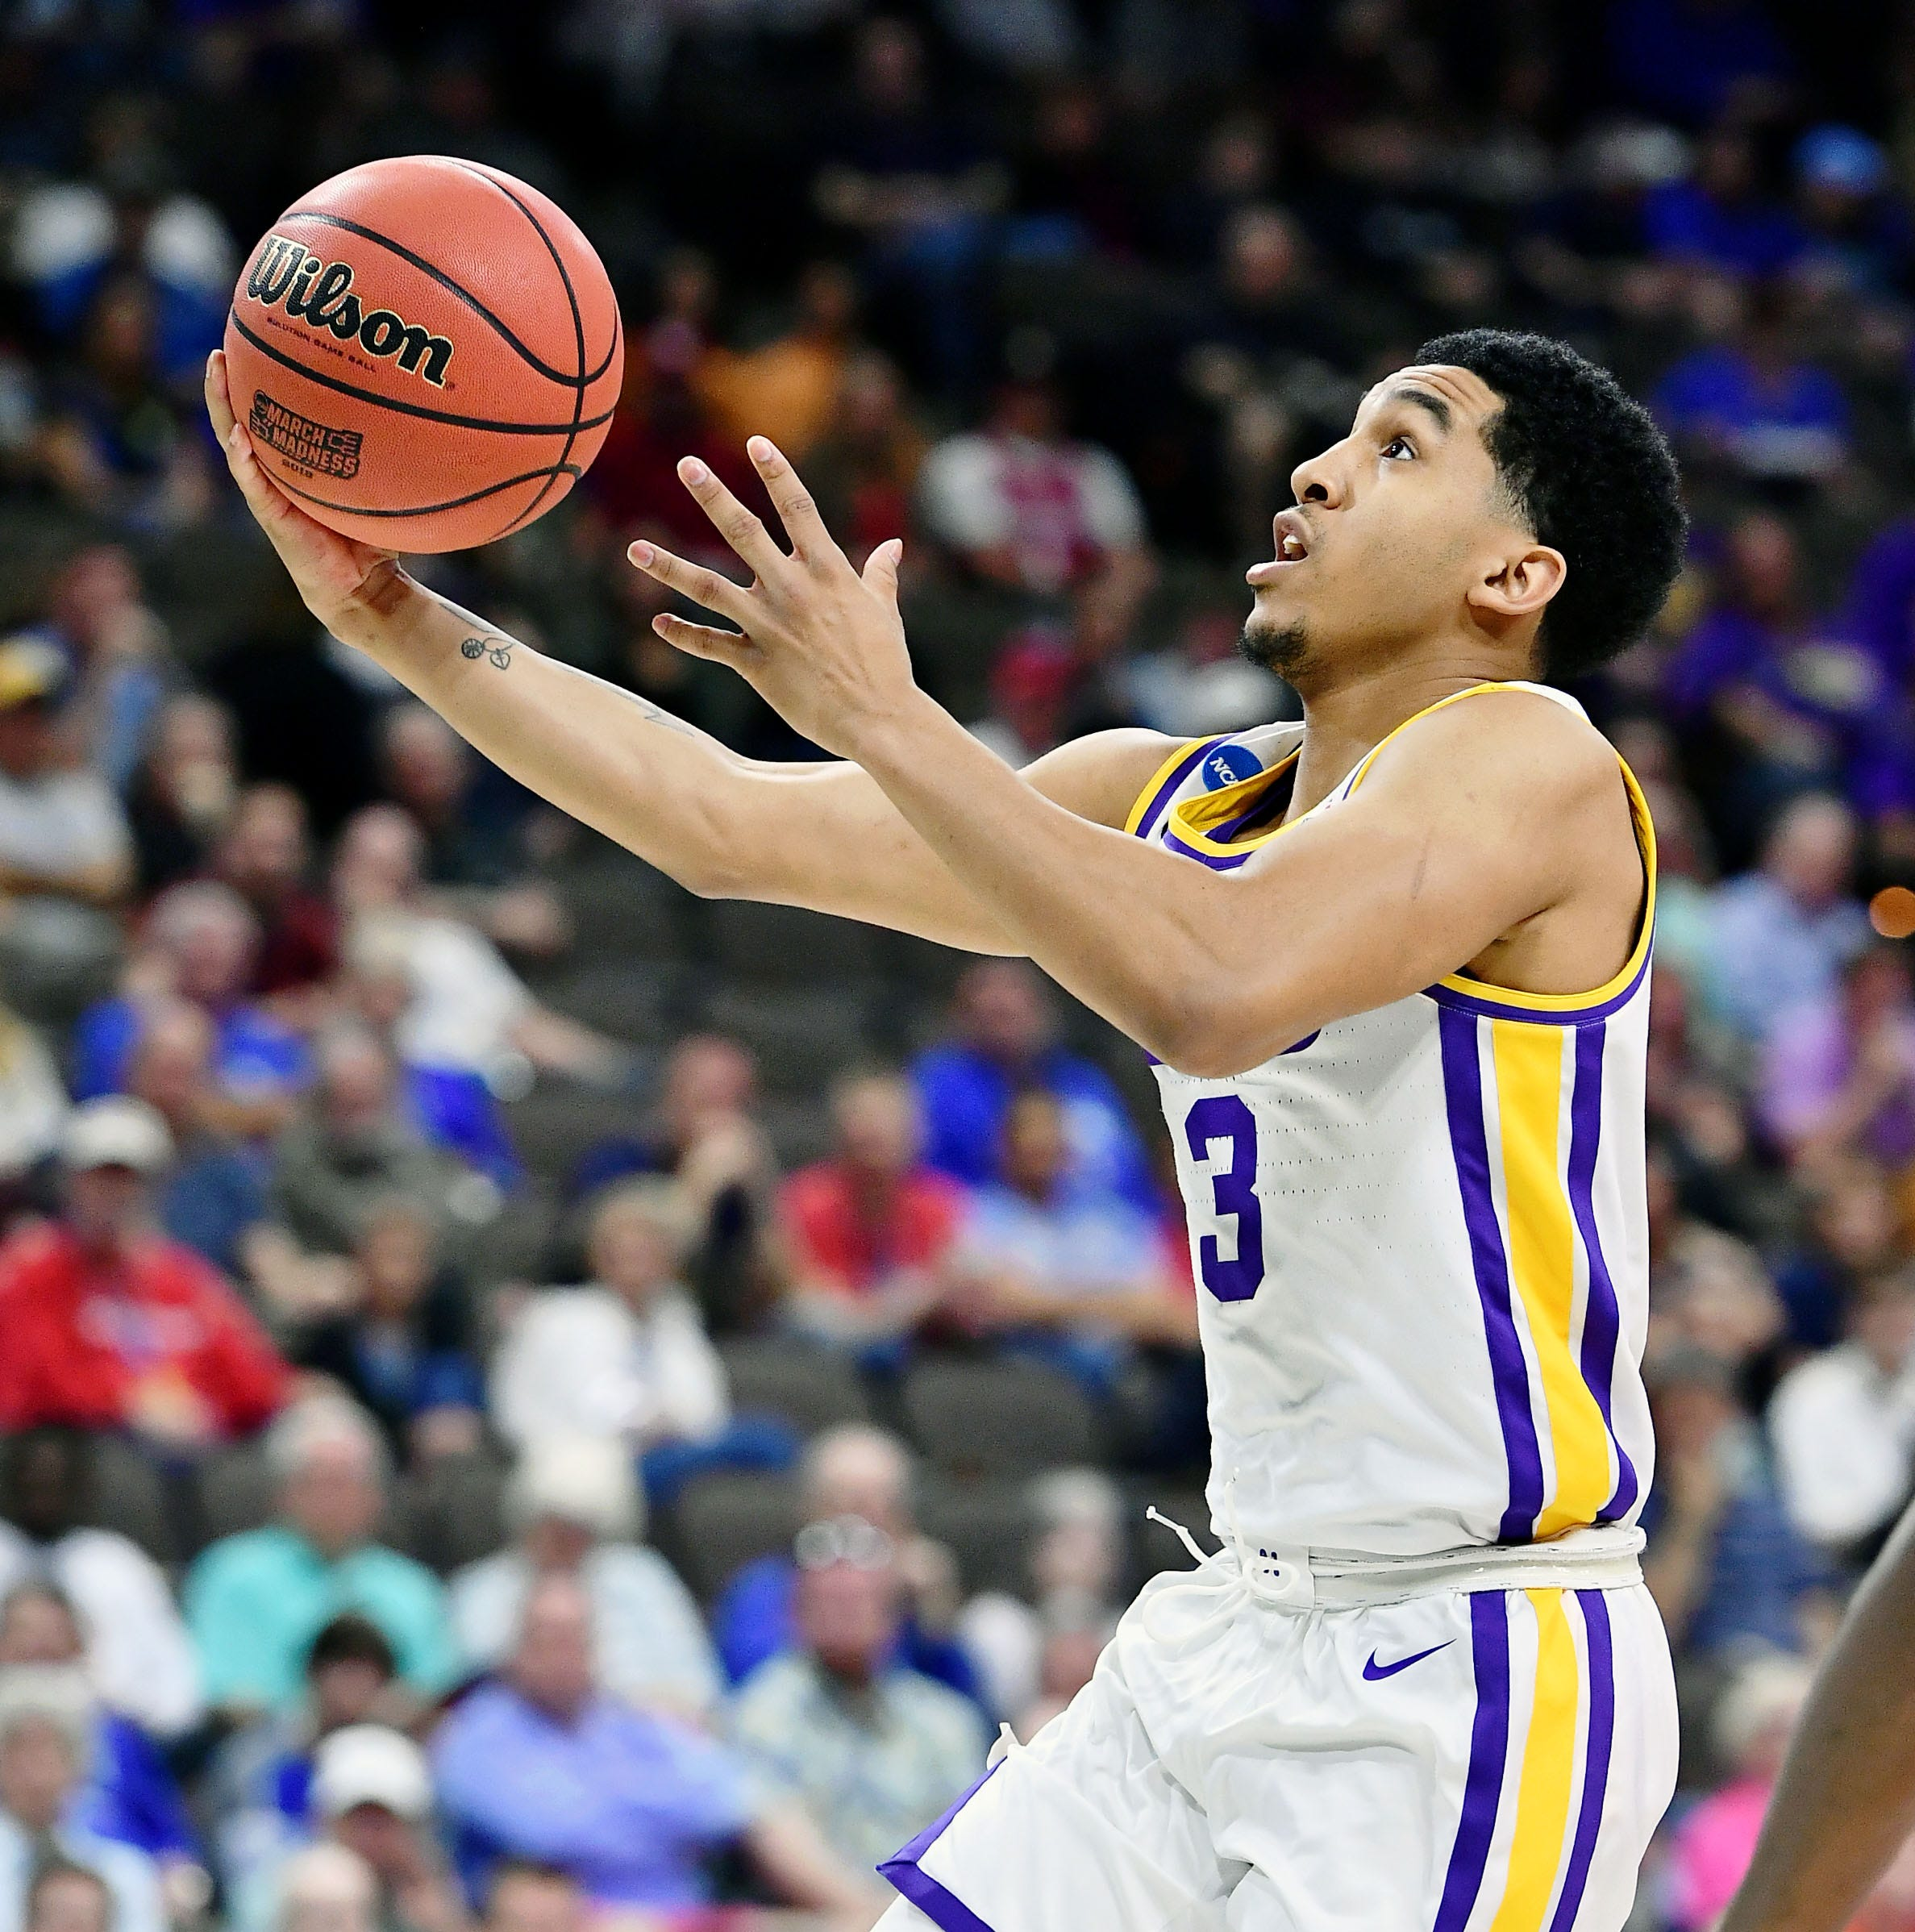 Watch LSU's Tremont Waters send the Tigers to the Sweet 16 with the tournament's first game-winner